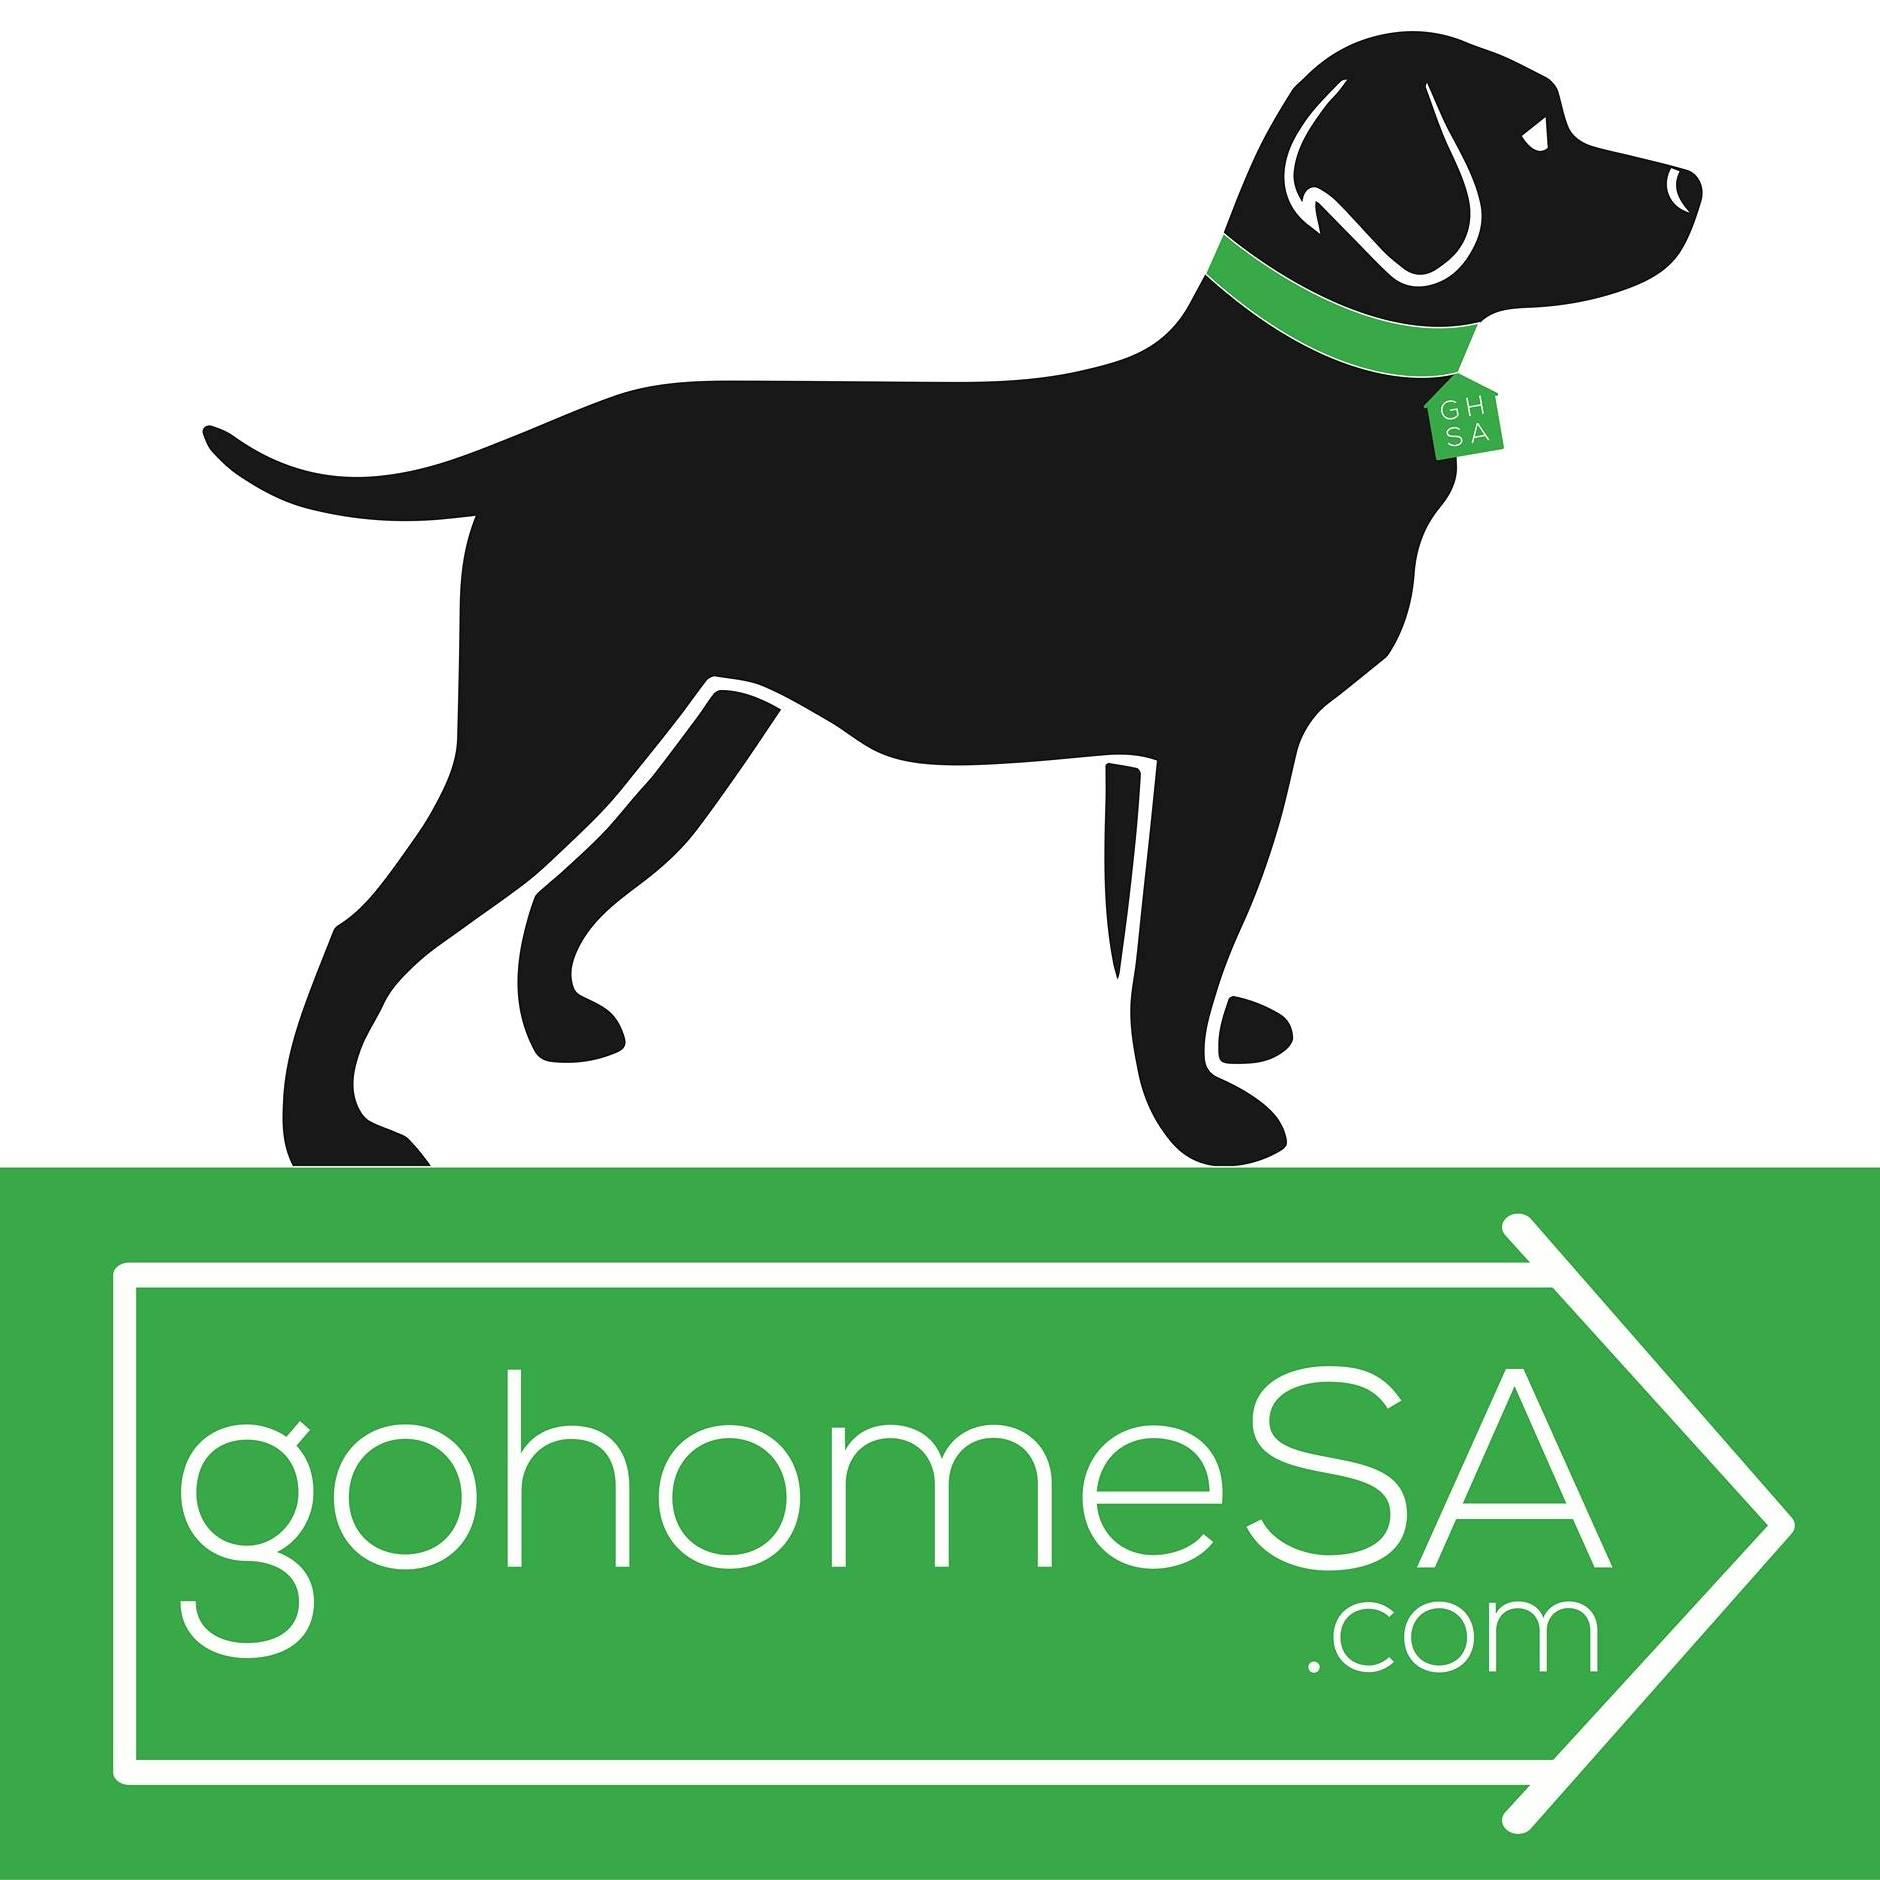 Go Home SA Home search website in San Antonio TX